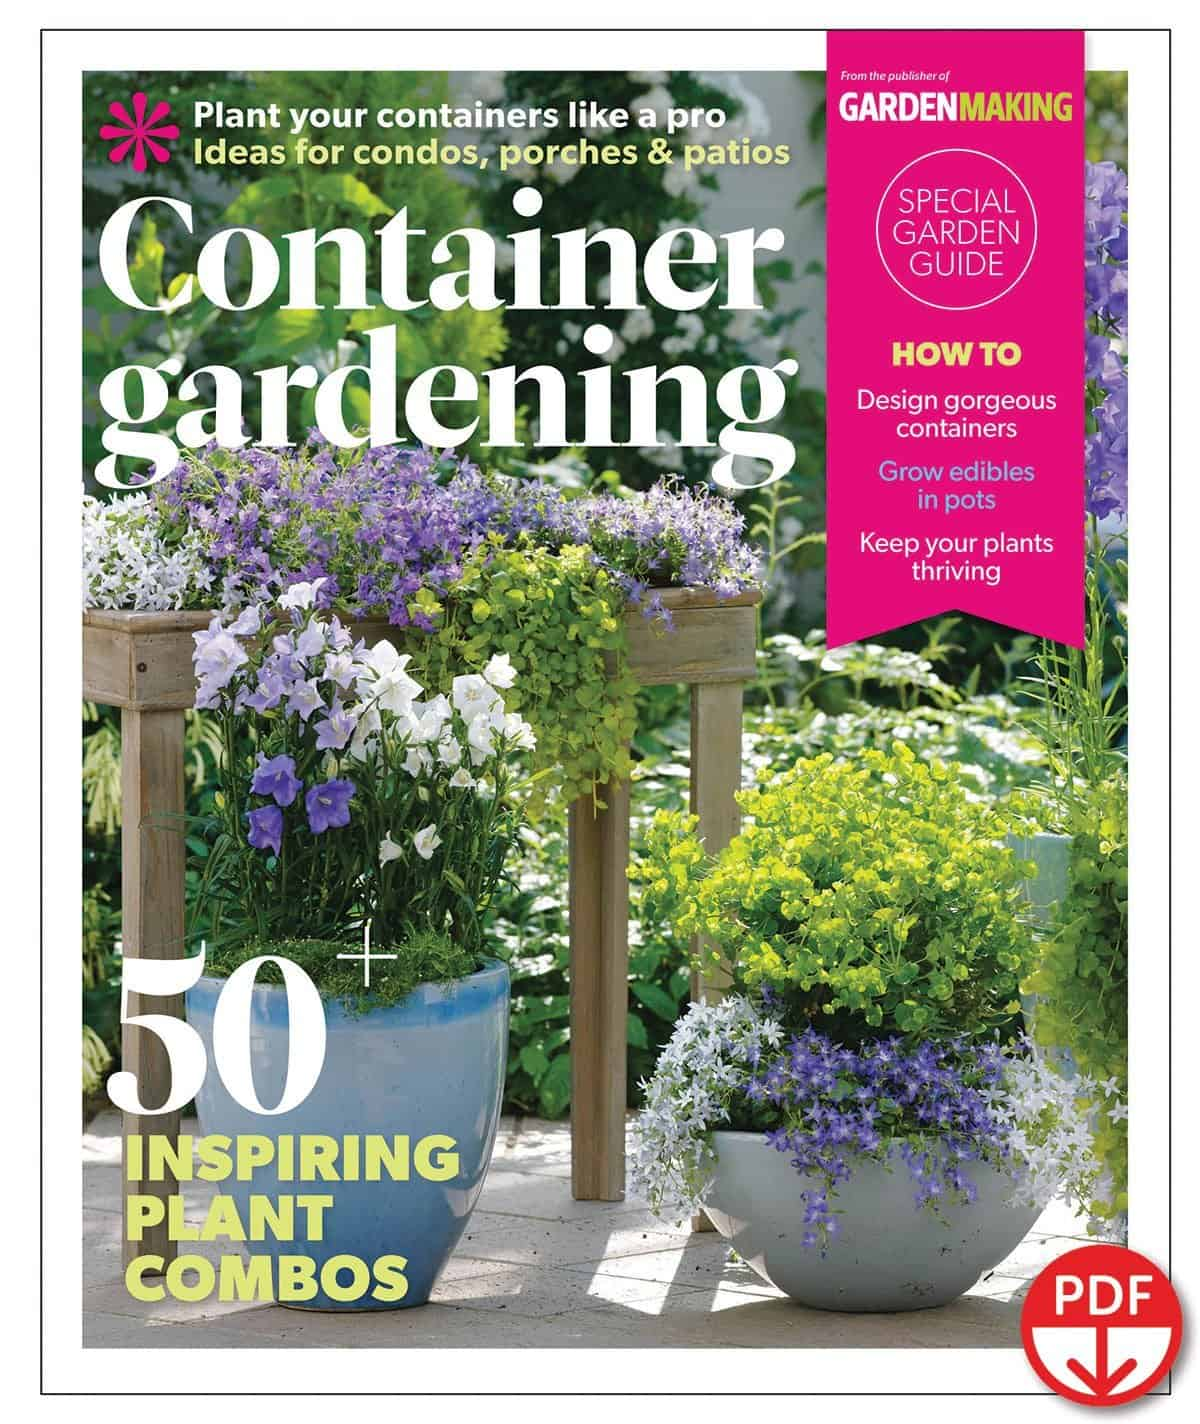 Many people new to gardening start with containers. The Container Gardening Guide has been directed by Garden Making Editor-in-chief Beckie Fox to appeal both to new gardeners and experienced hands looking for some new plant combinations to try out.